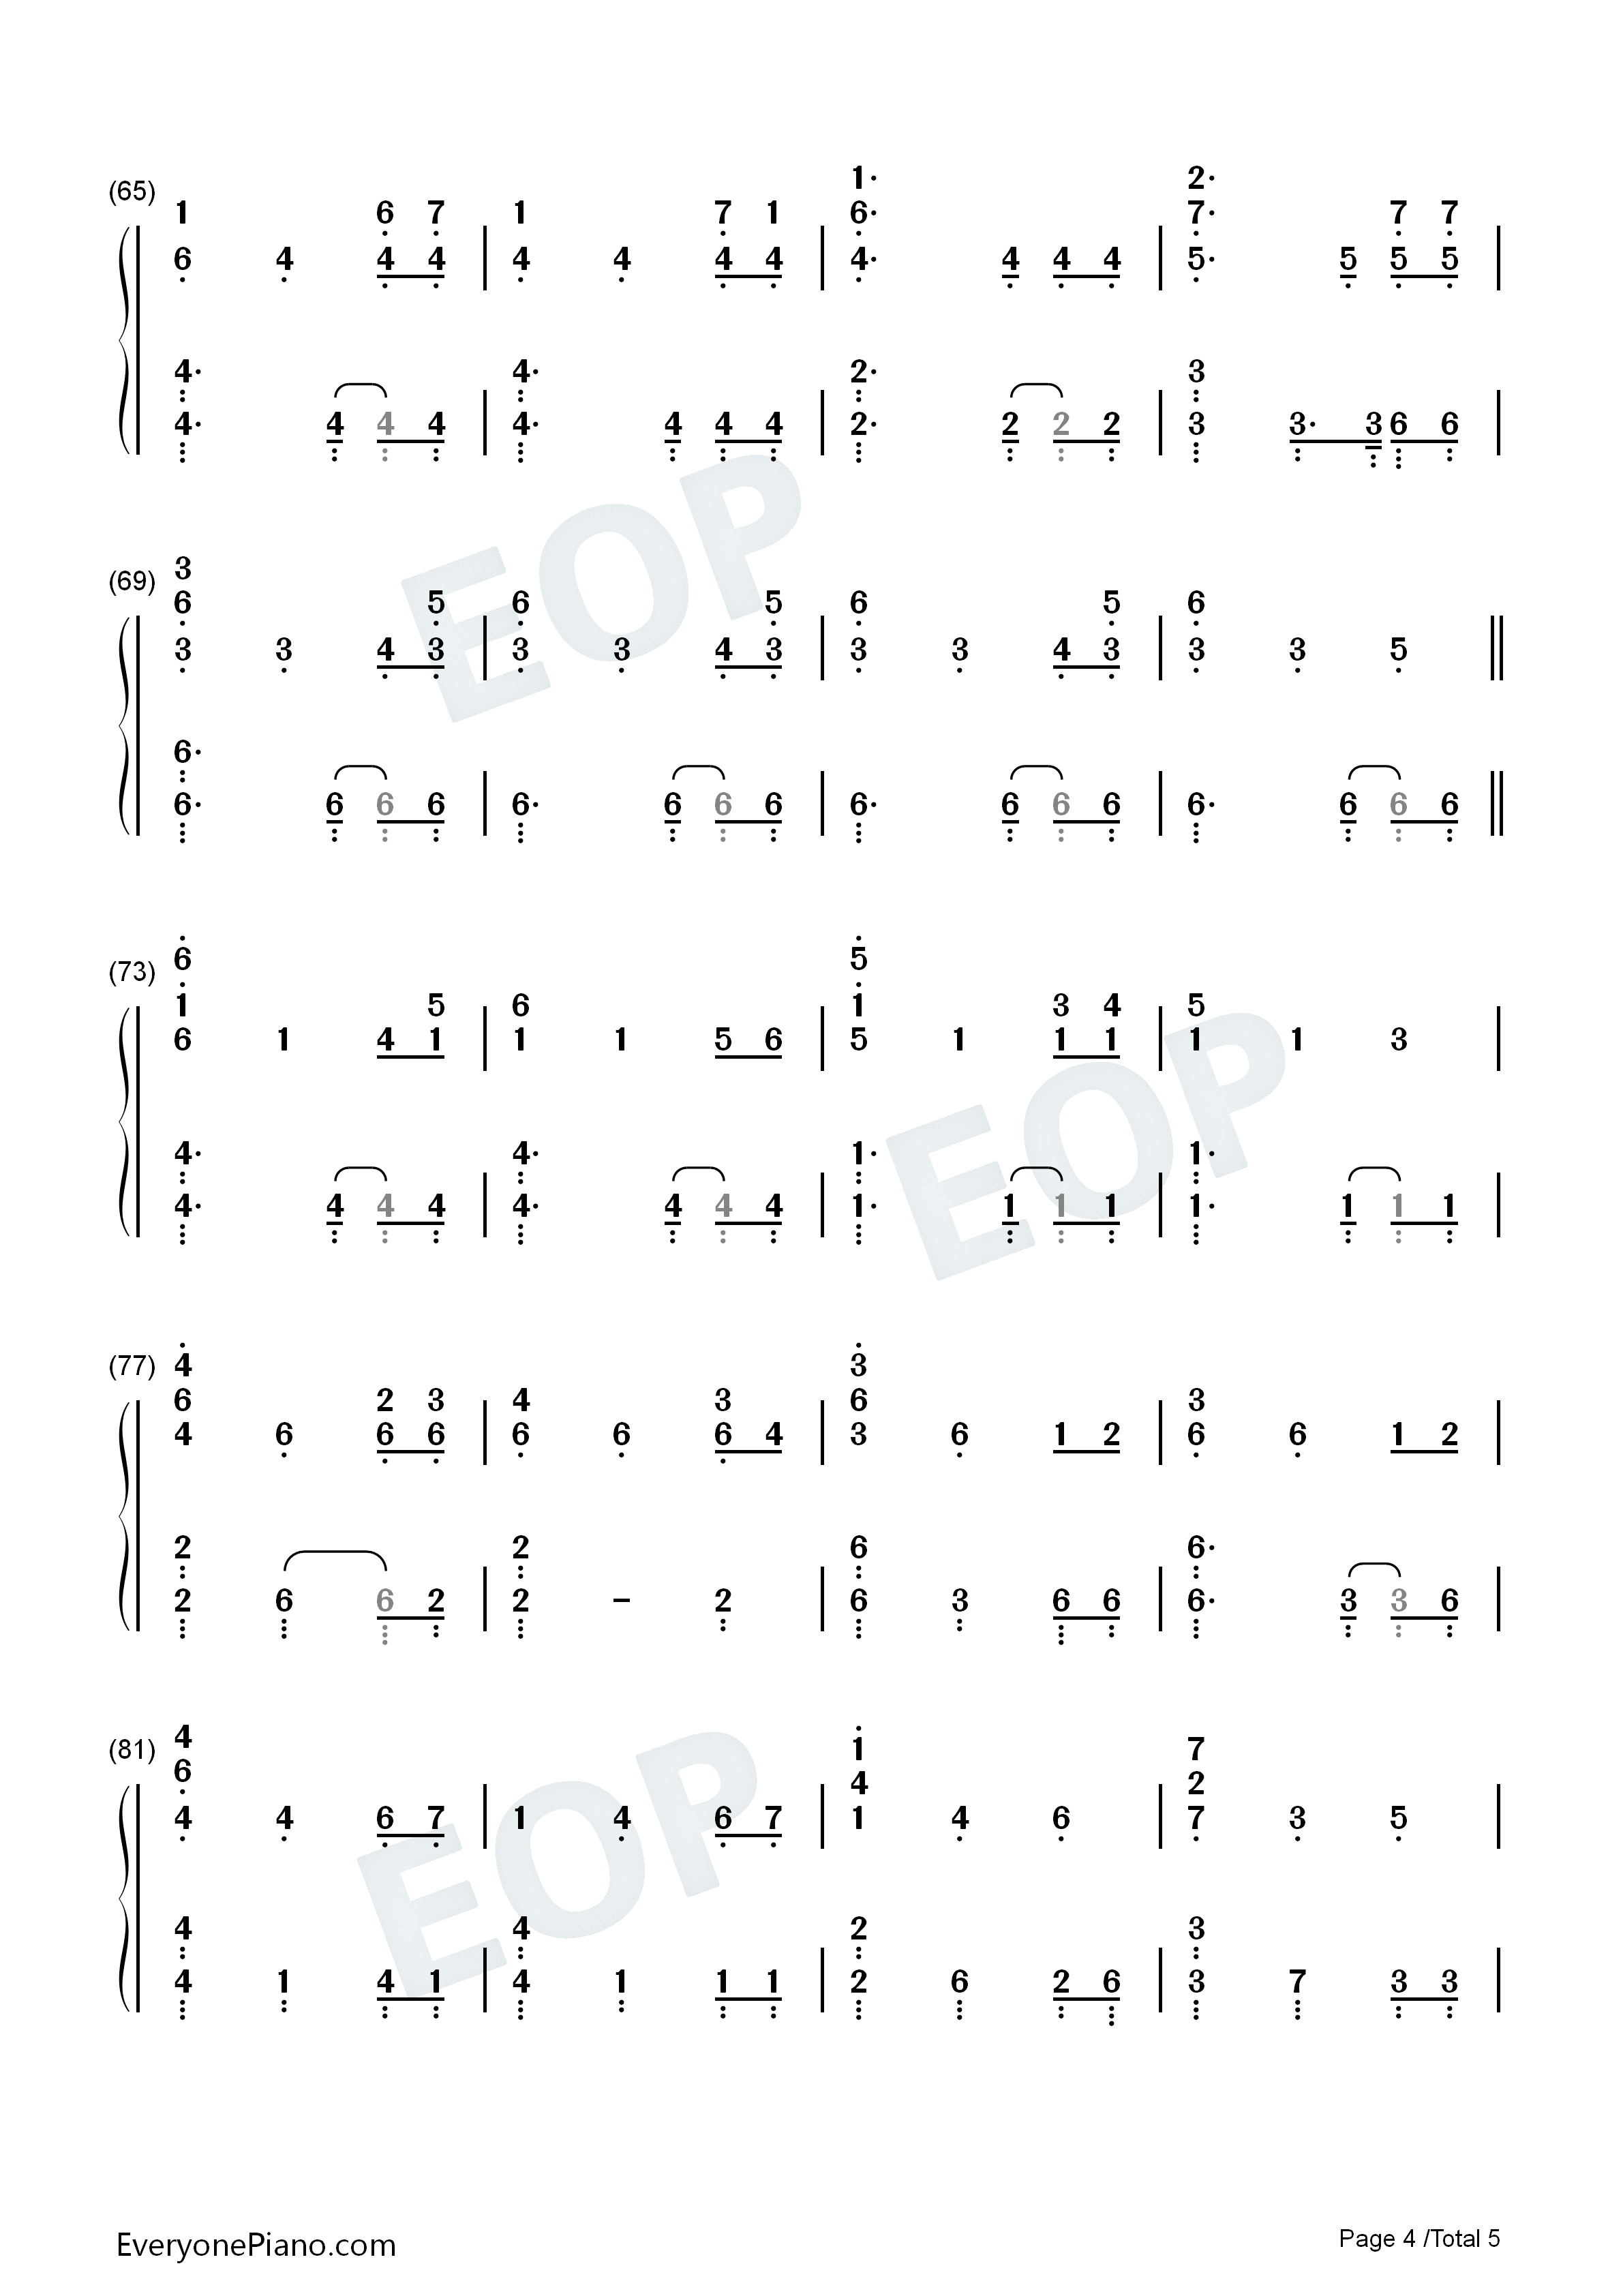 Game of thrones a song of ice and fire numbered musical notation listen now print sheet game of thrones a song of ice and fire numbered musical notation preview 4 hexwebz Images